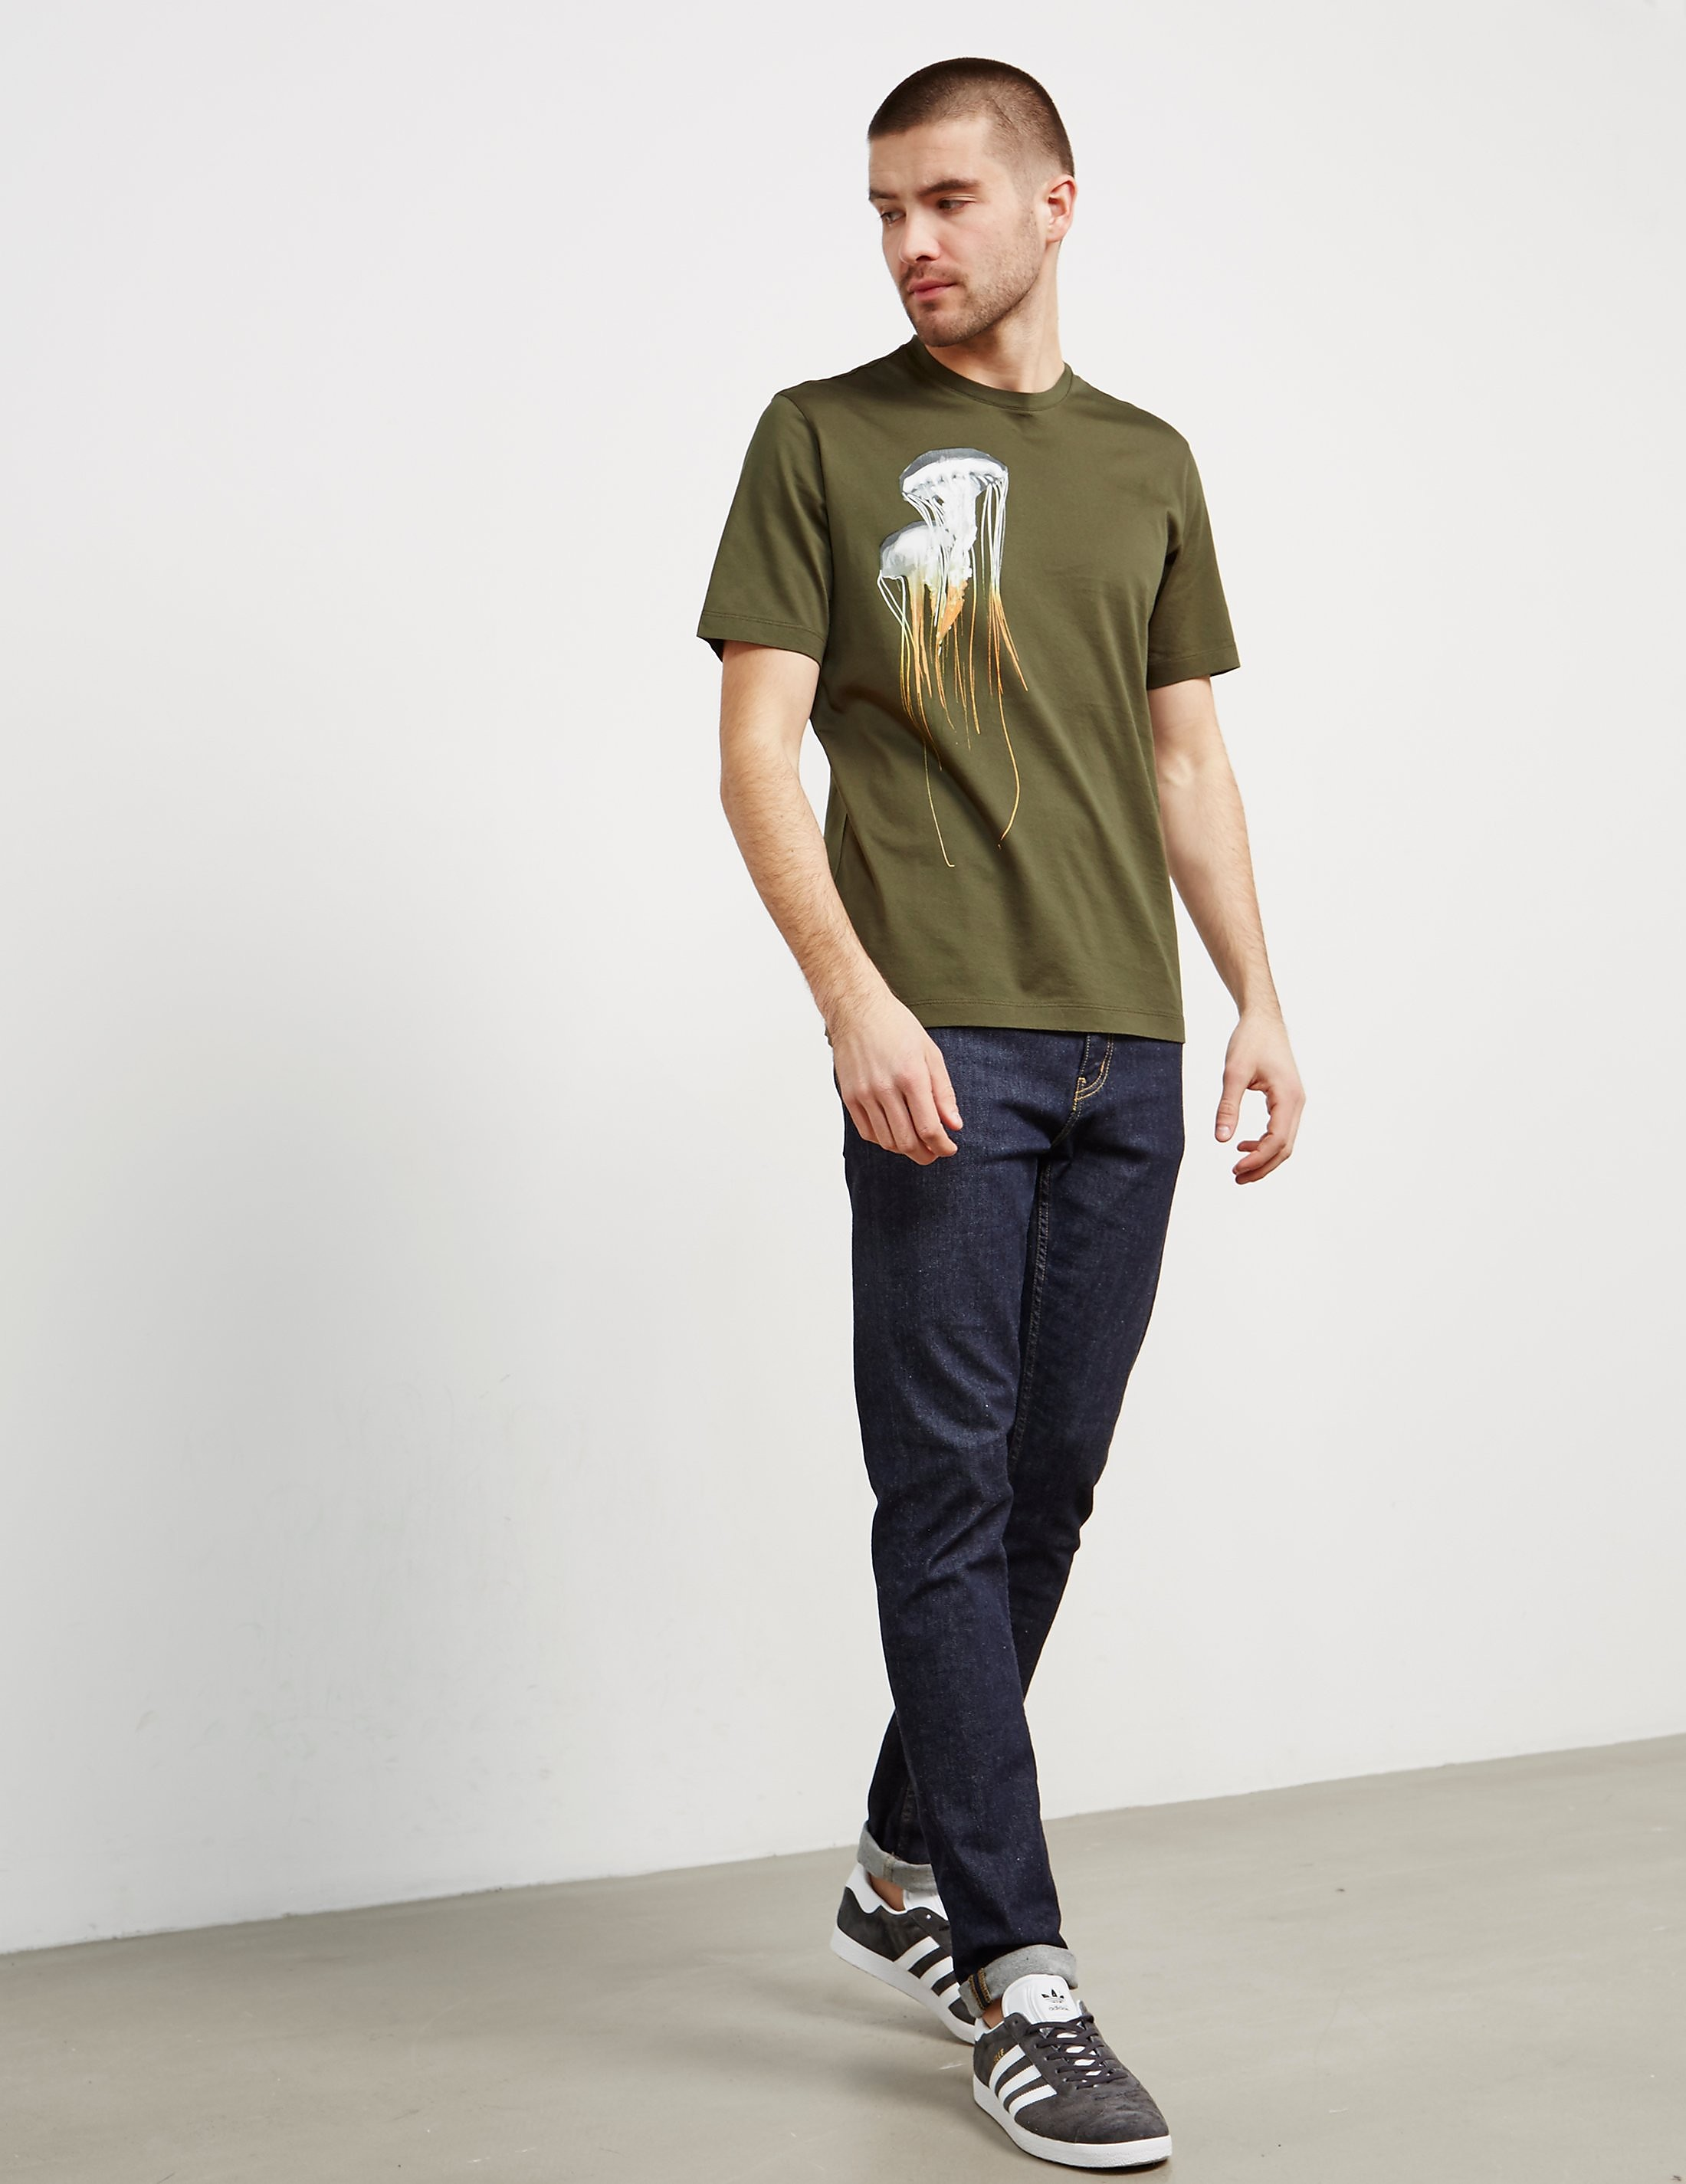 Z Zegna Clear Jellyfish Short Sleeve T-Shirt